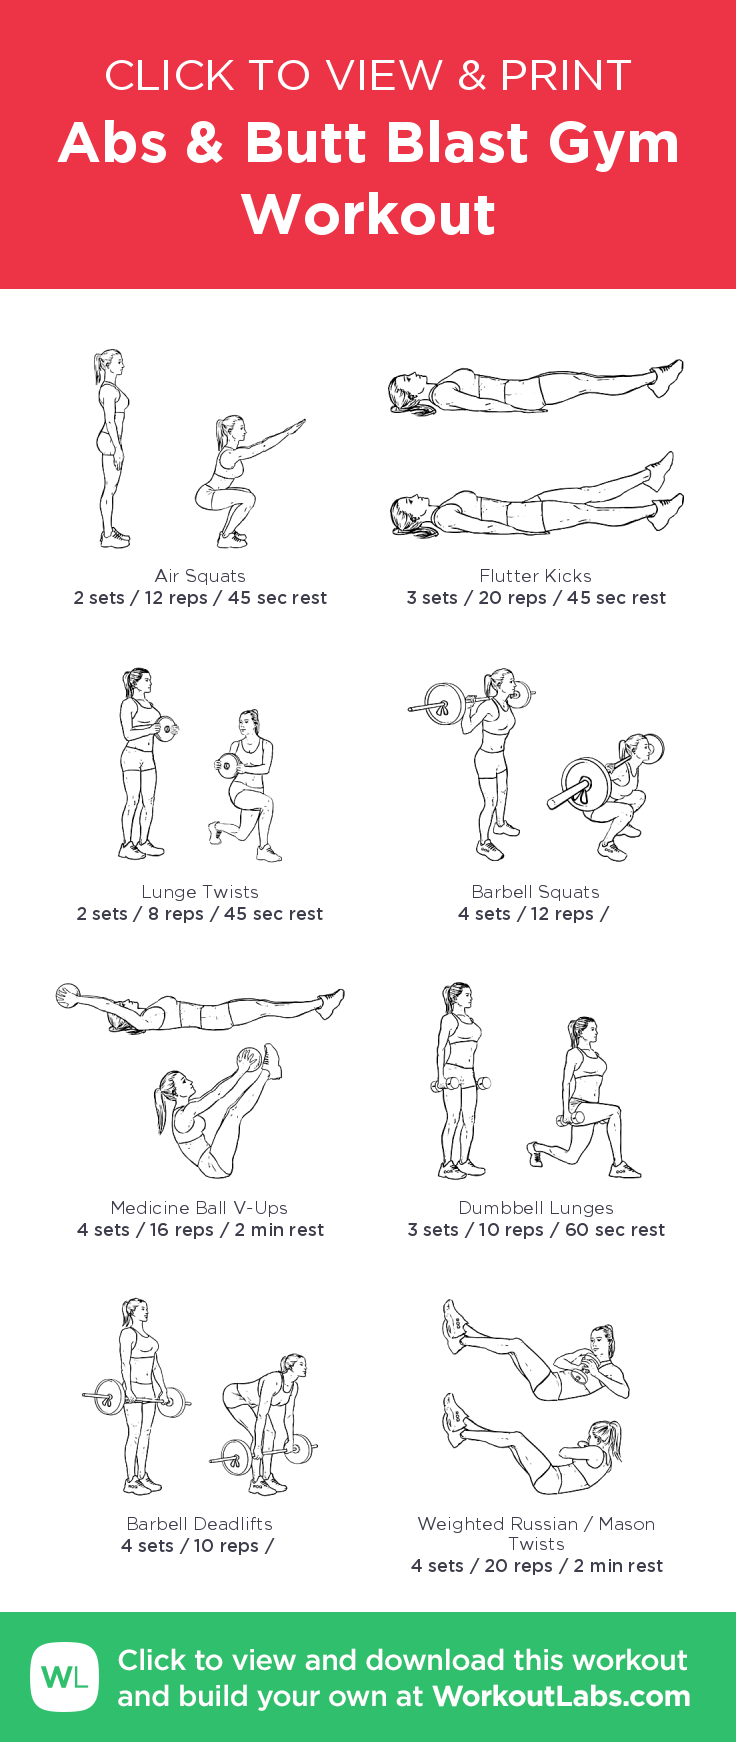 Abs & Butt Blast Gym Workout – illustrated exercise plan